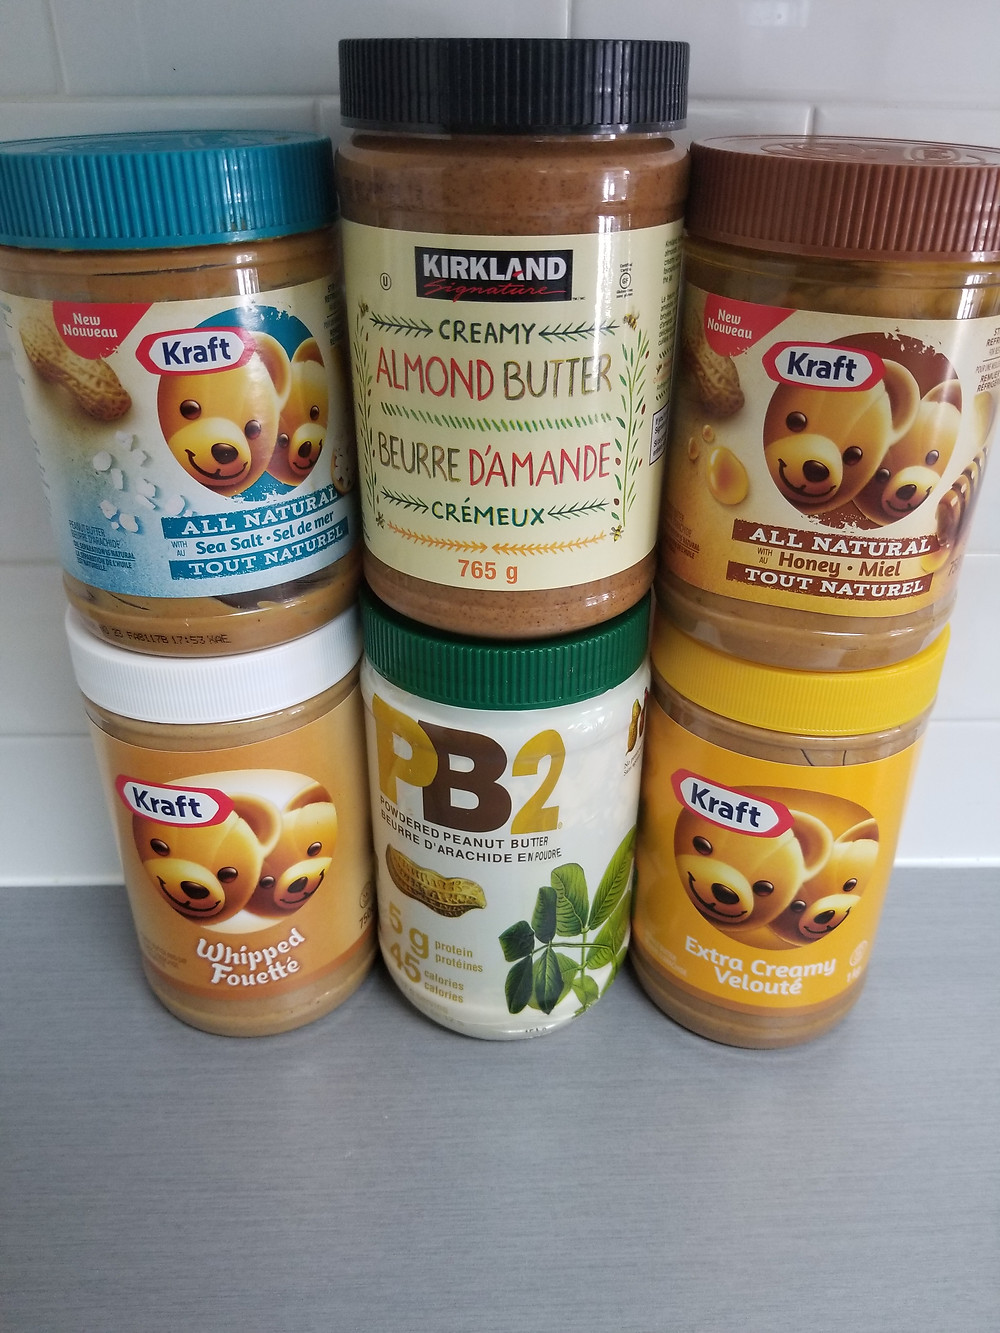 peanut butter, almond butter, natural, trans fat, healthy fat